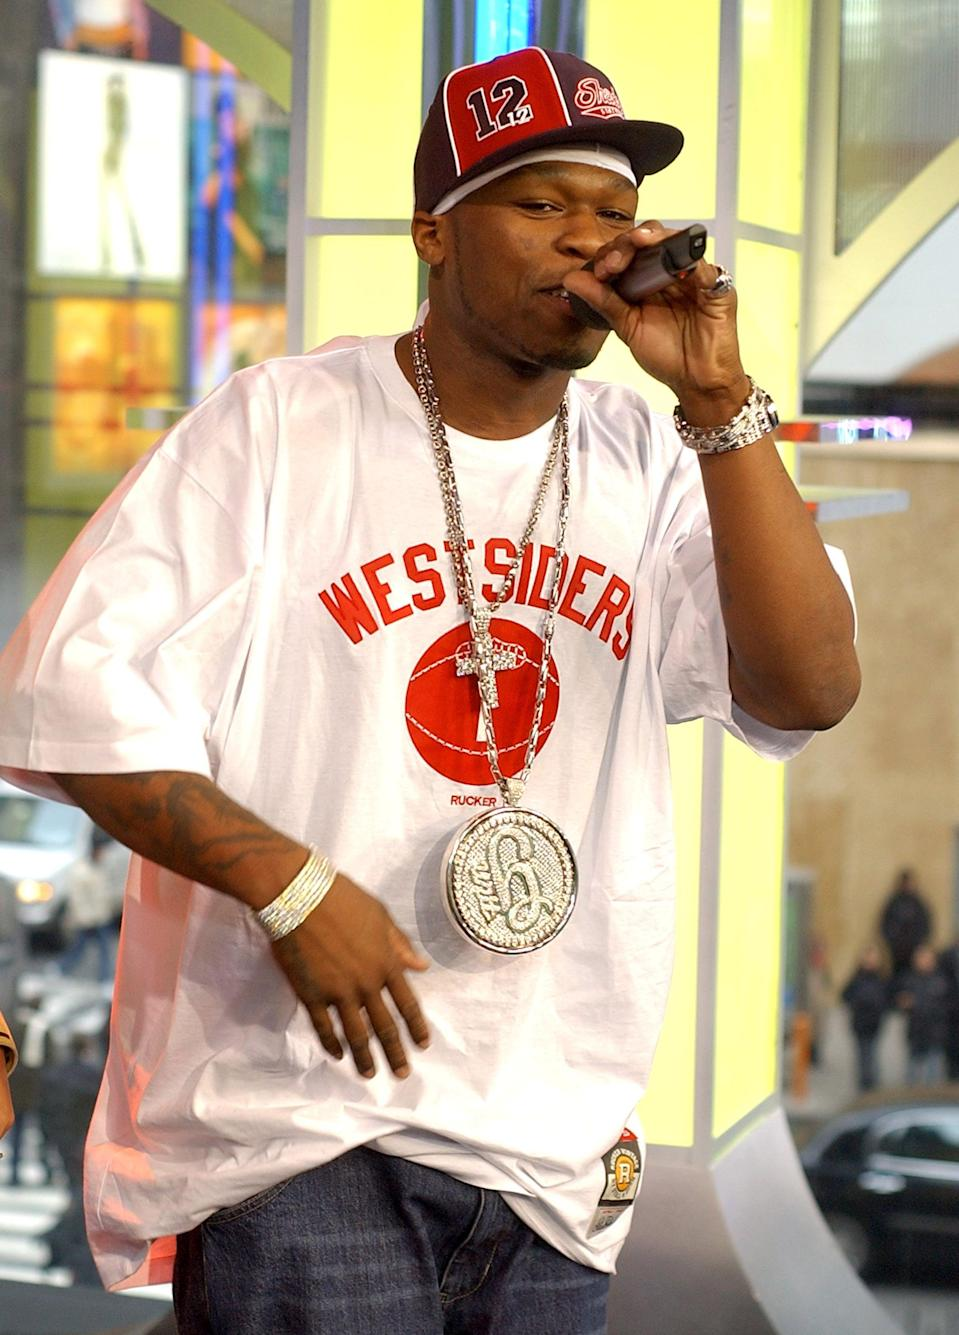 <p>50 Cent performed for an episode of <b>TRL</b> in 2003.</p>